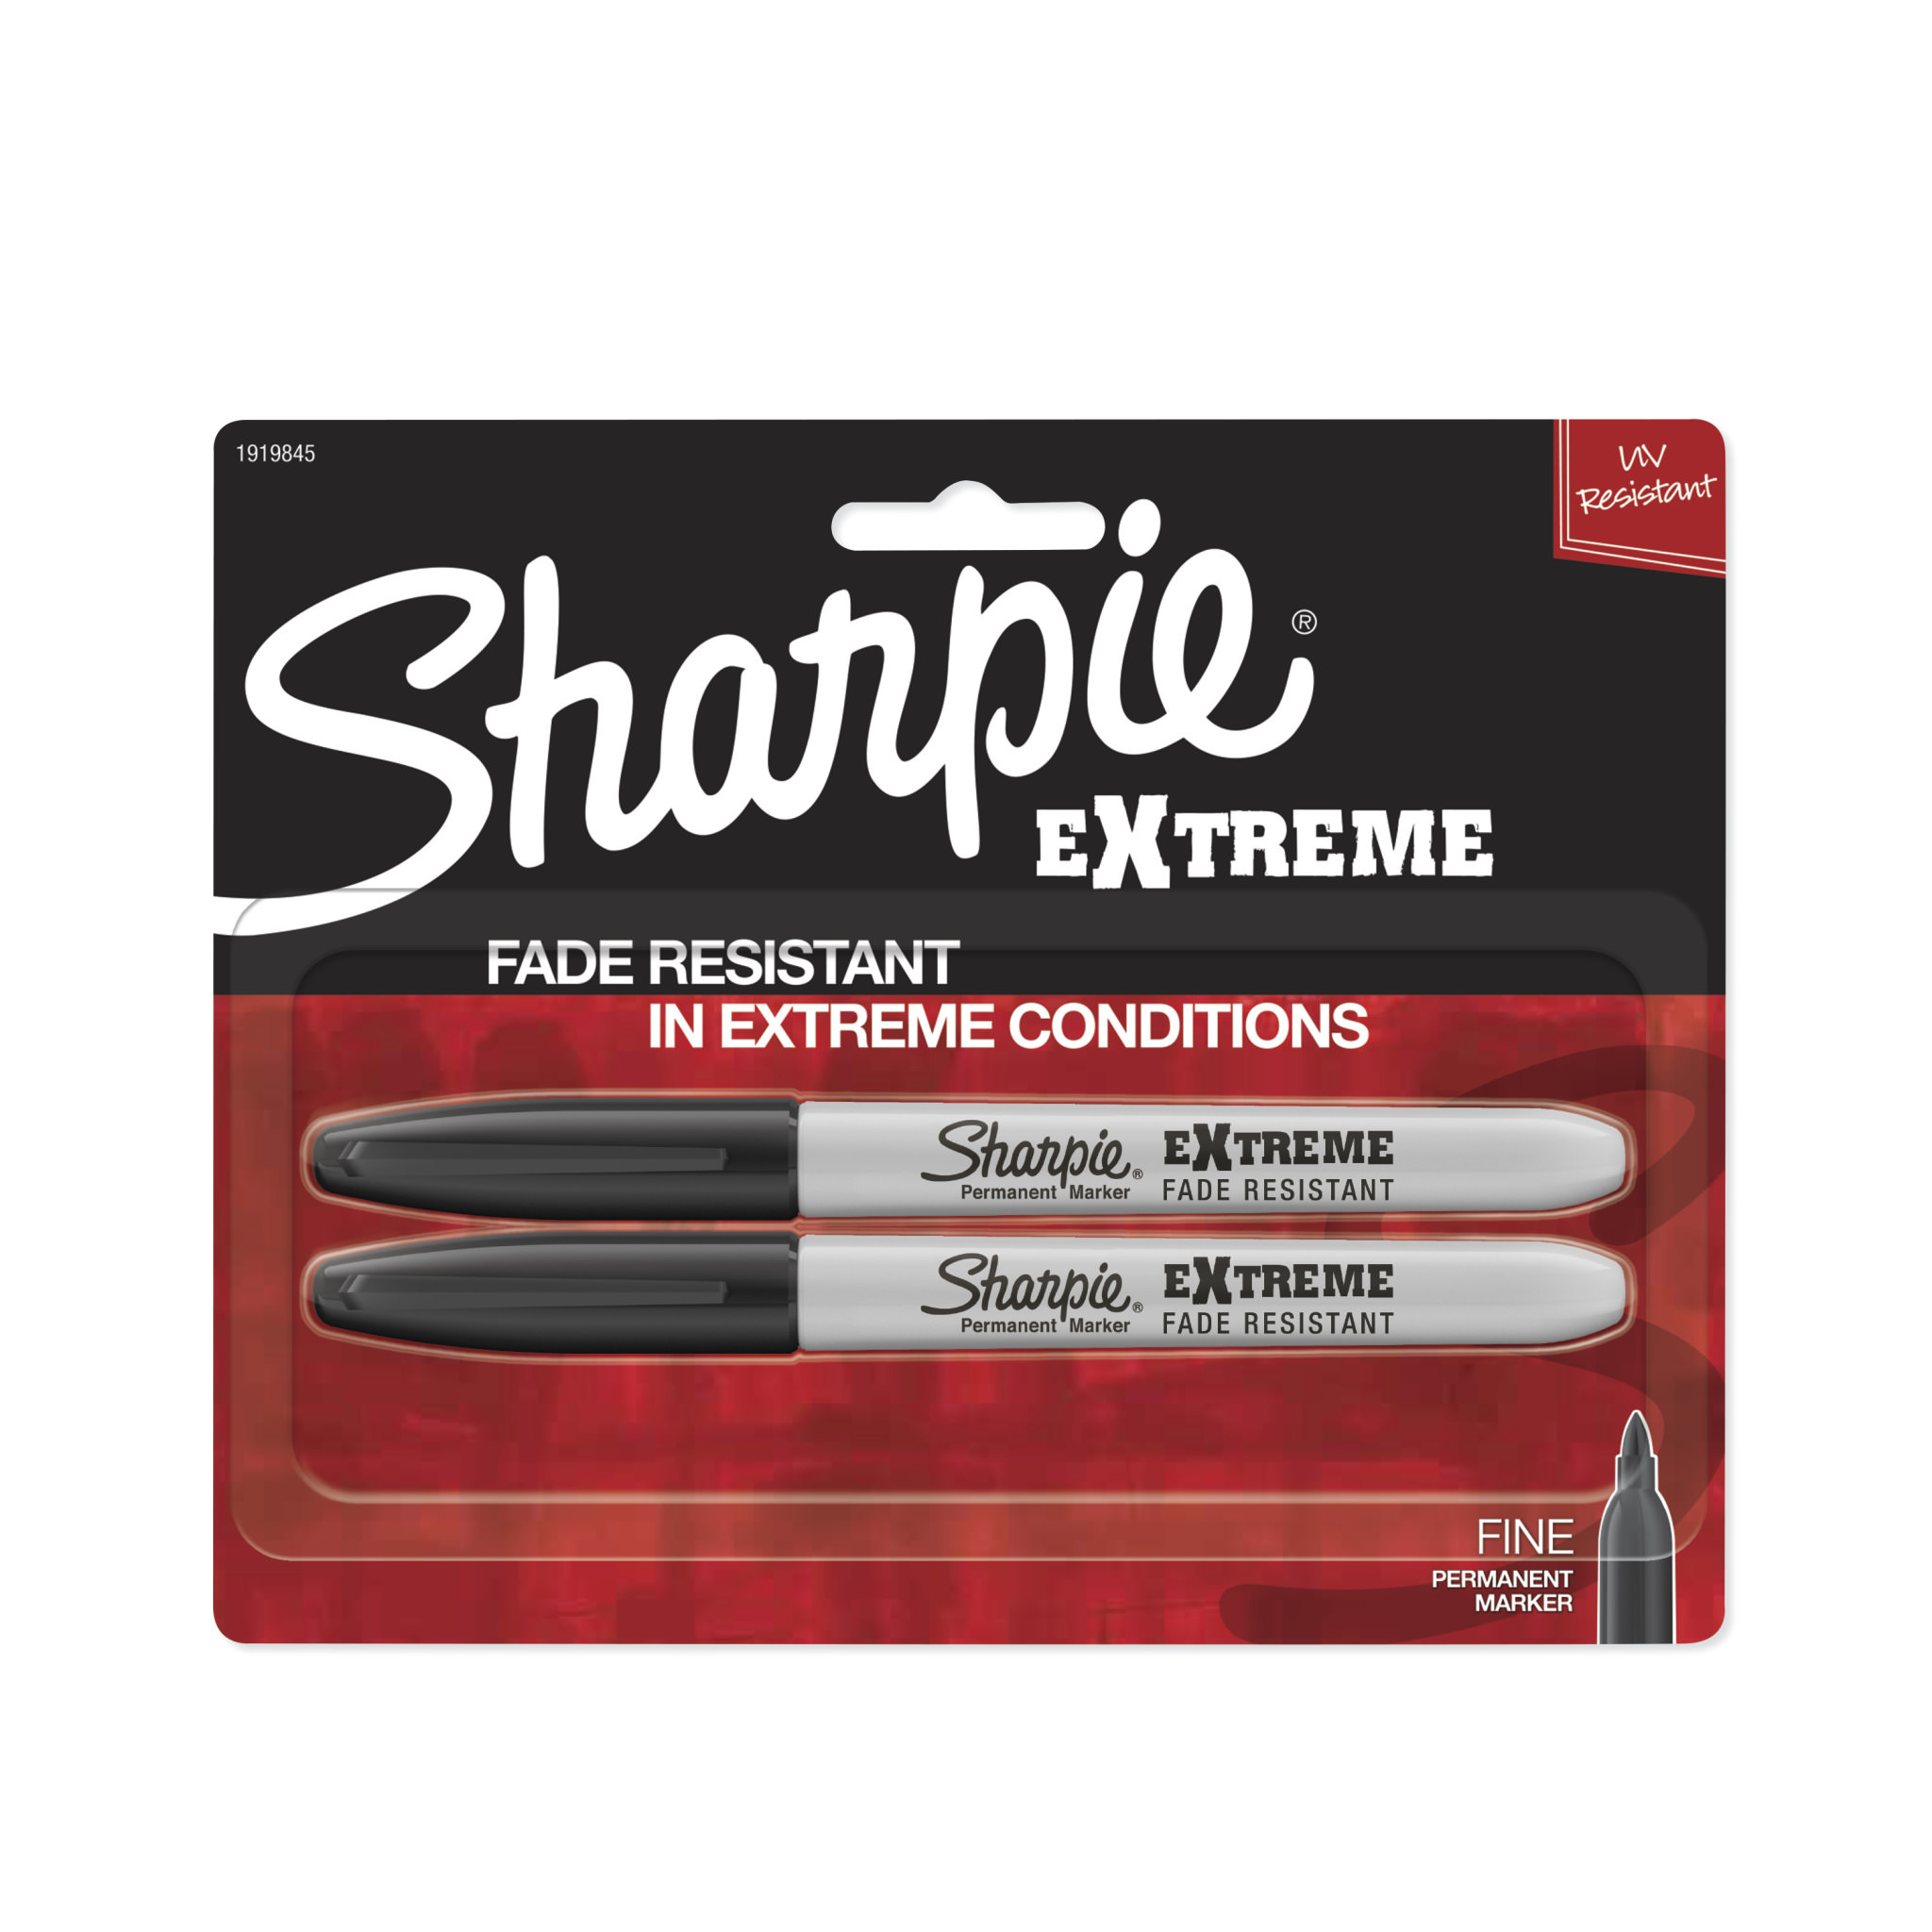 (2 Pack) Sharpie Extreme Permanent Markers, Fine Point, Black, 2 Count